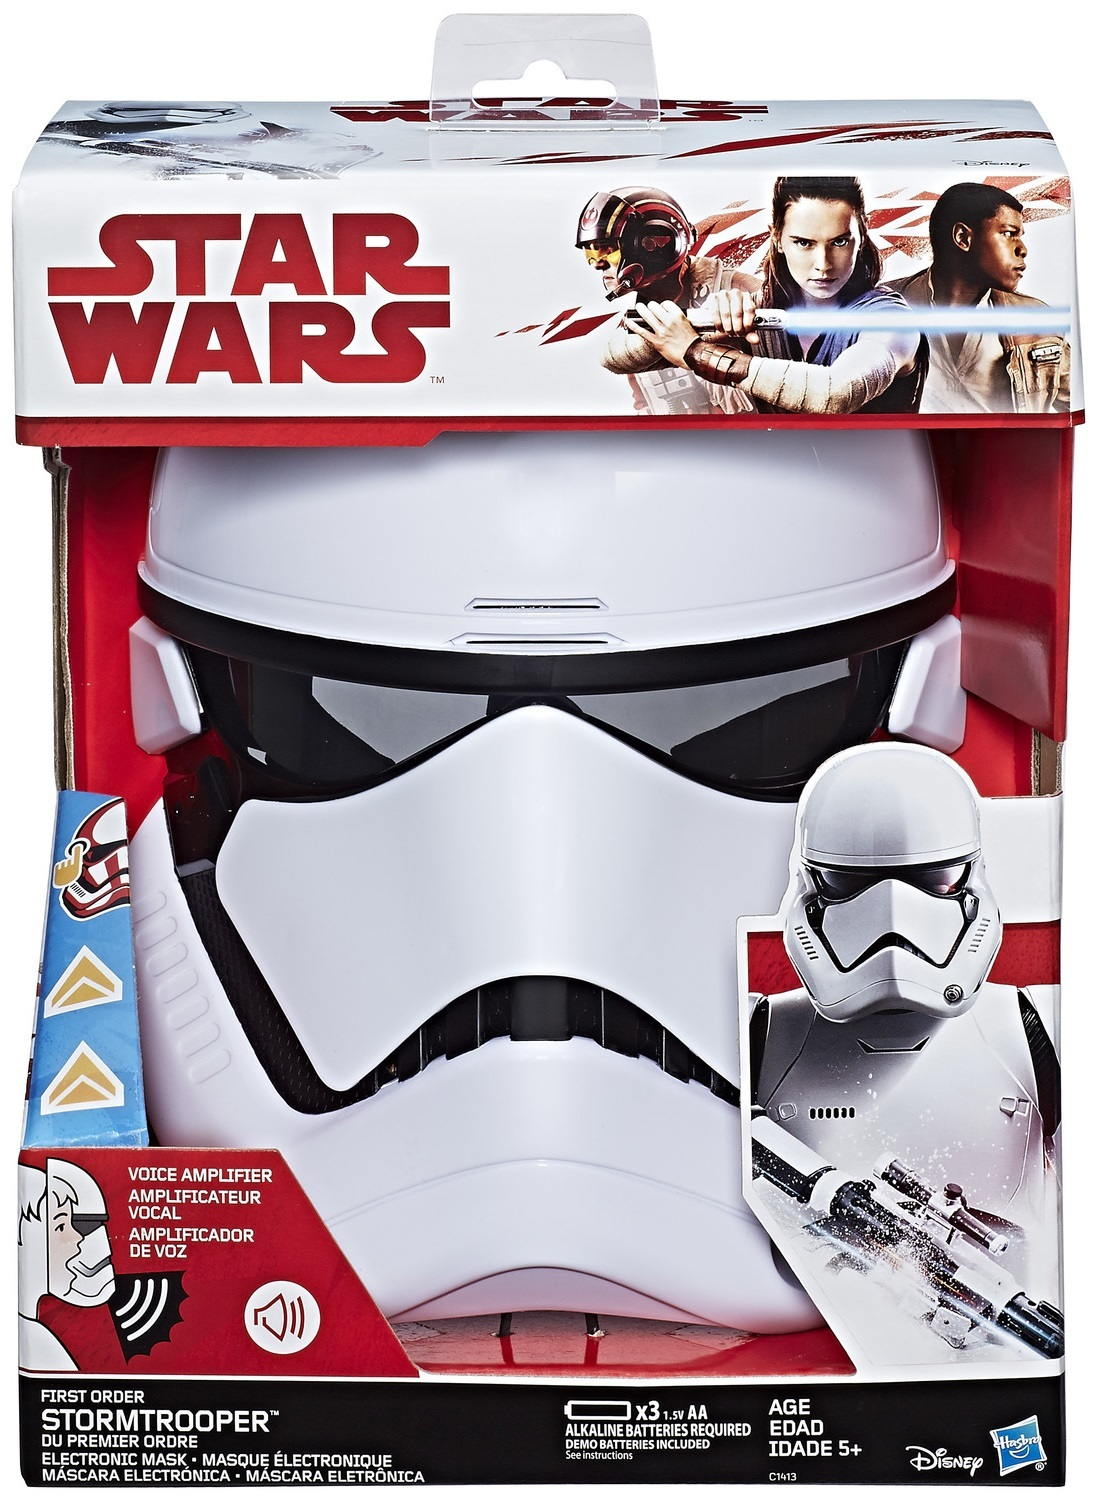 Star Wars: The Last Jedi Electronic Mask - First Order Stormtrooper image